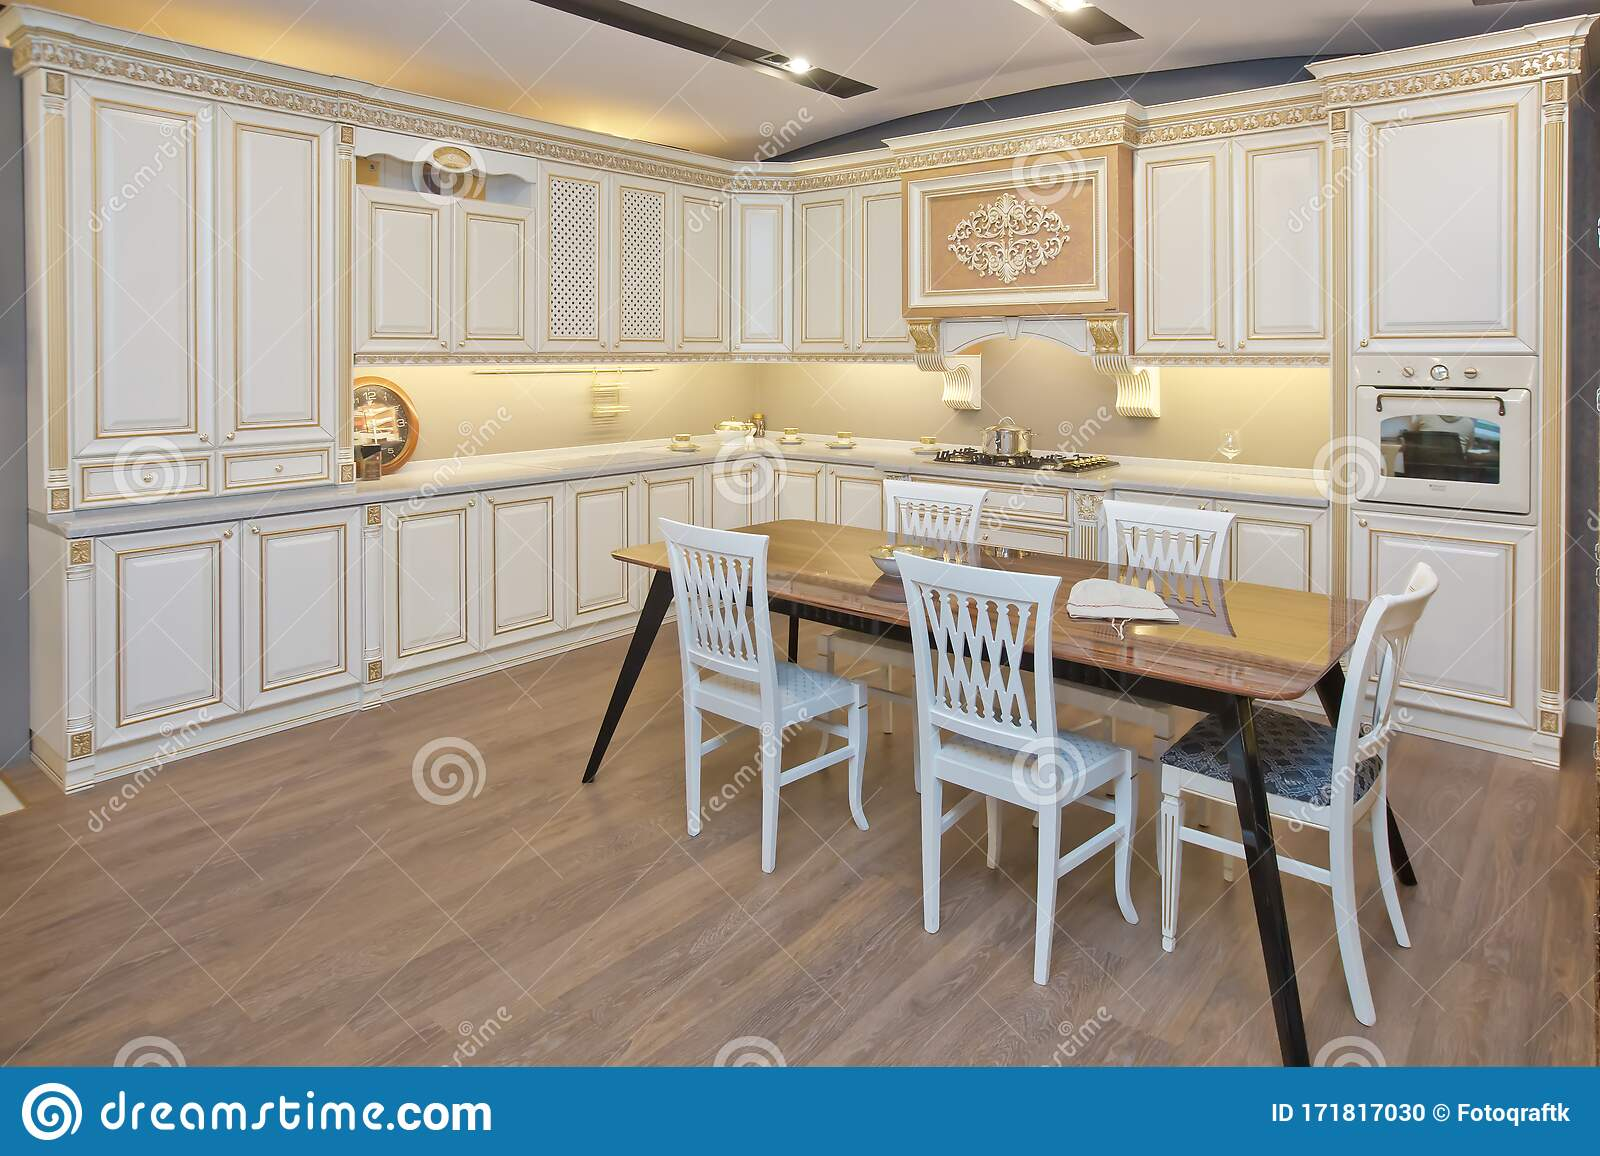 Furniture Of The Classic Italian Kitchen Modern Style Design Background Home Decoration Modern Home Interior Modern Kitchen Stock Photo Image Of Design Domestic 171817030